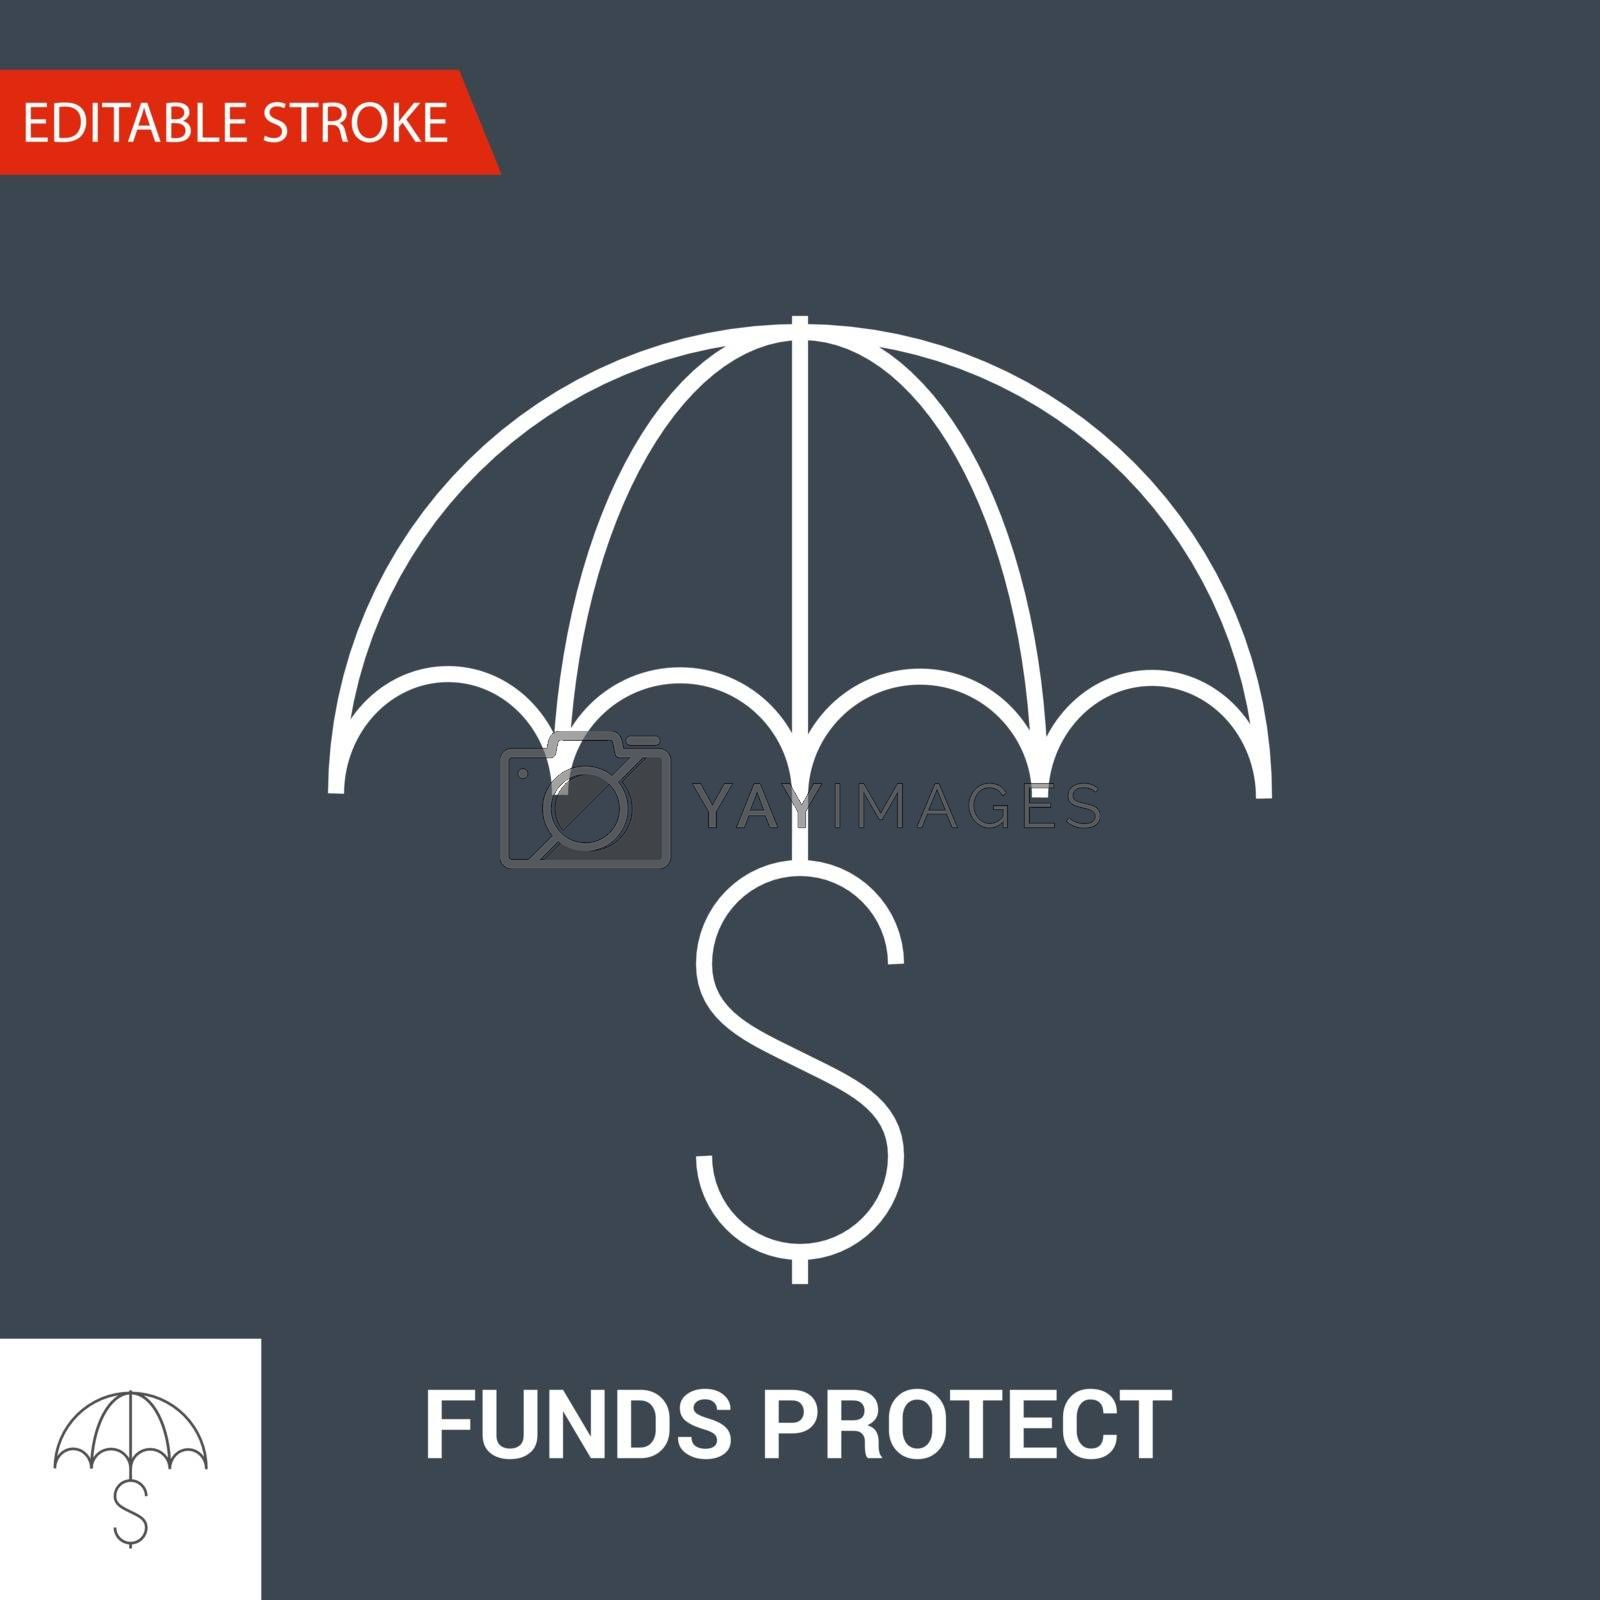 Funds Protect Icon. Thin Line Vector Illustration. Adjust stroke weight - Expand to any Size - Easy Change Colour - Editable Stroke